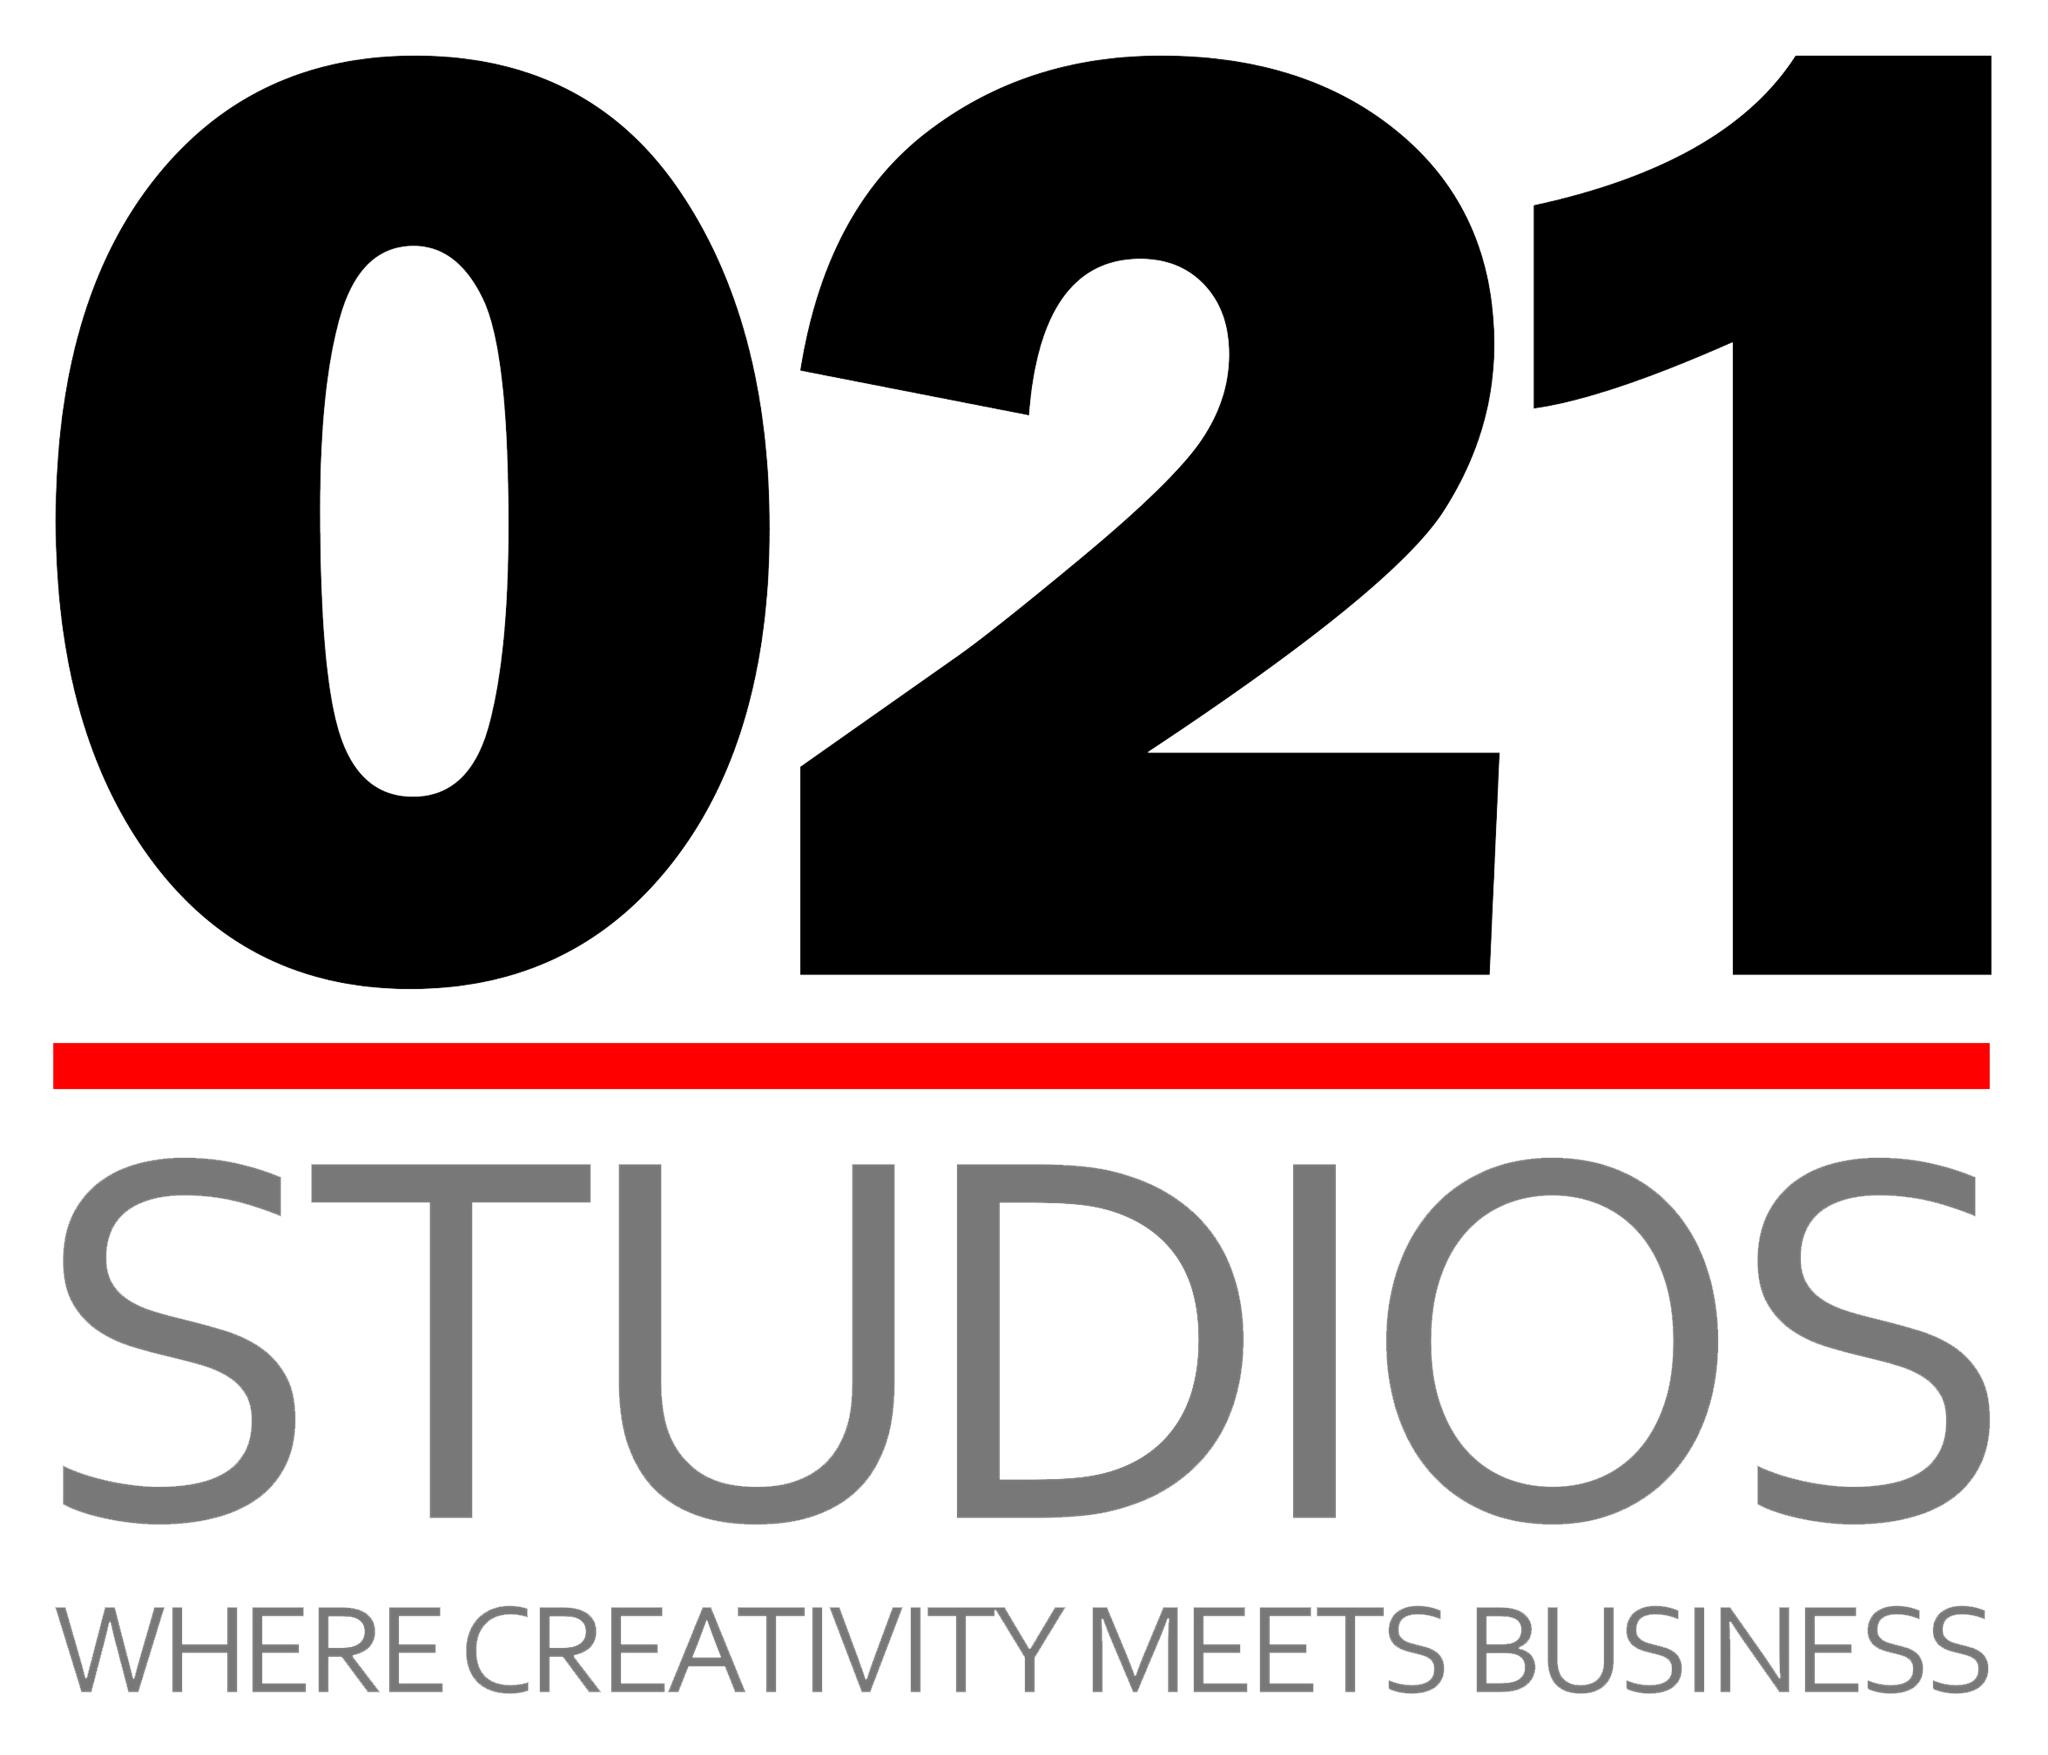 021 Studios – Where Creativity Meets Business